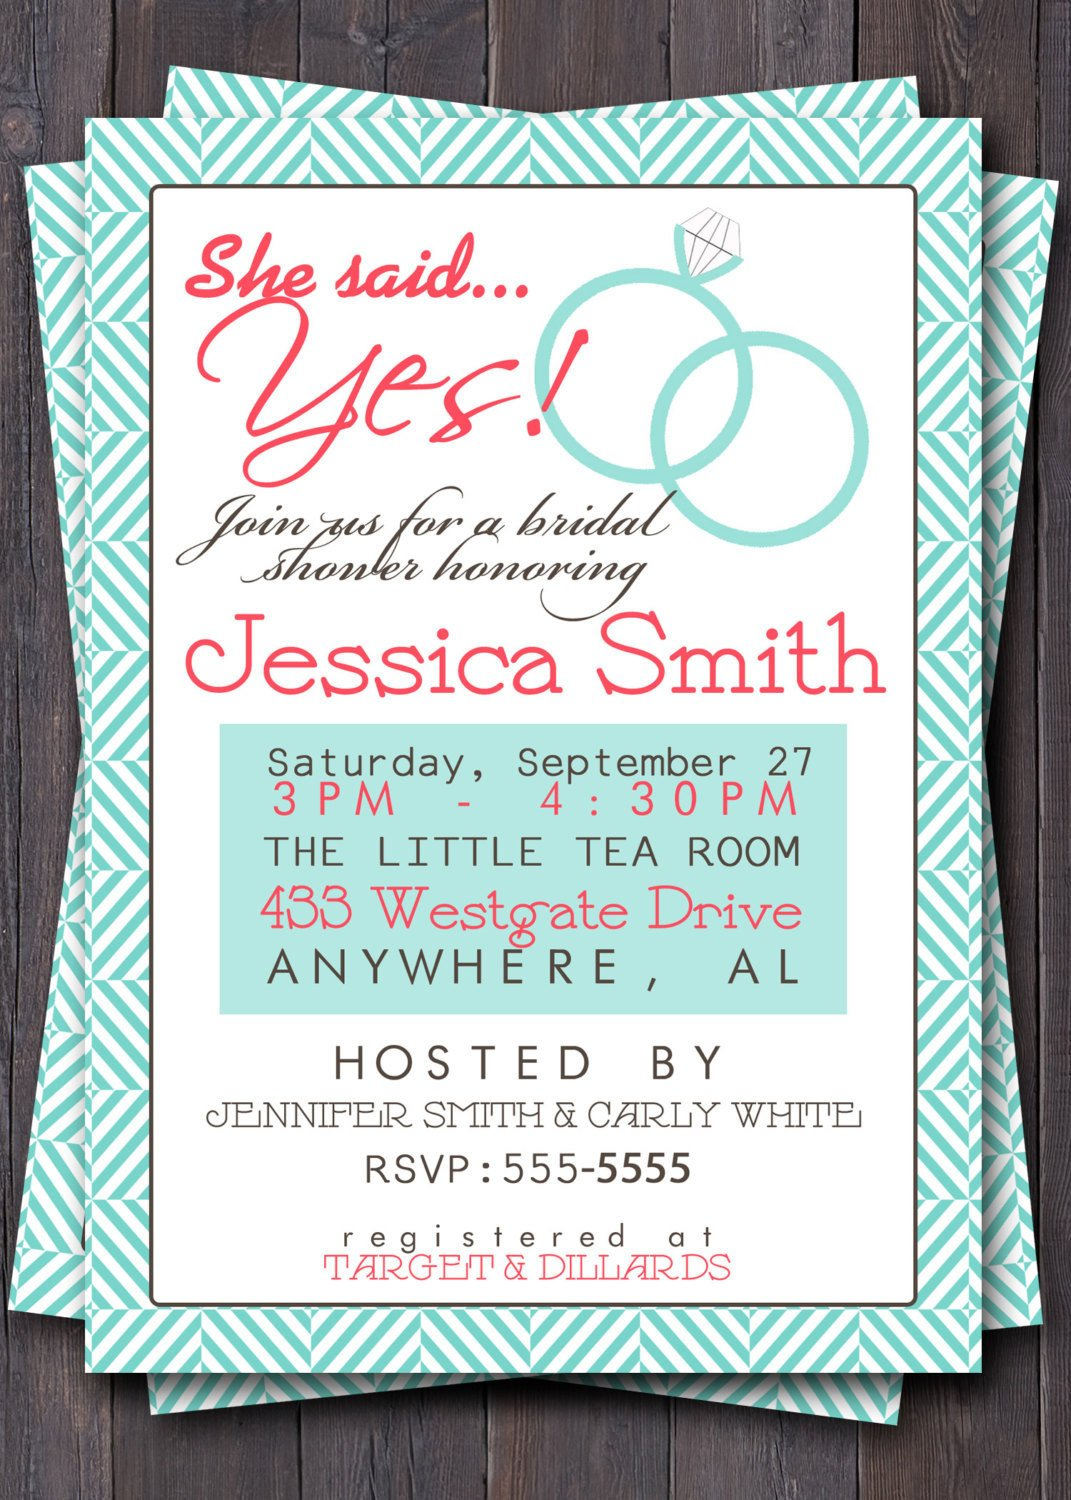 Wedding Shower Invite Templates Items Similar to Wedding Shower Invitation Invite Bridal